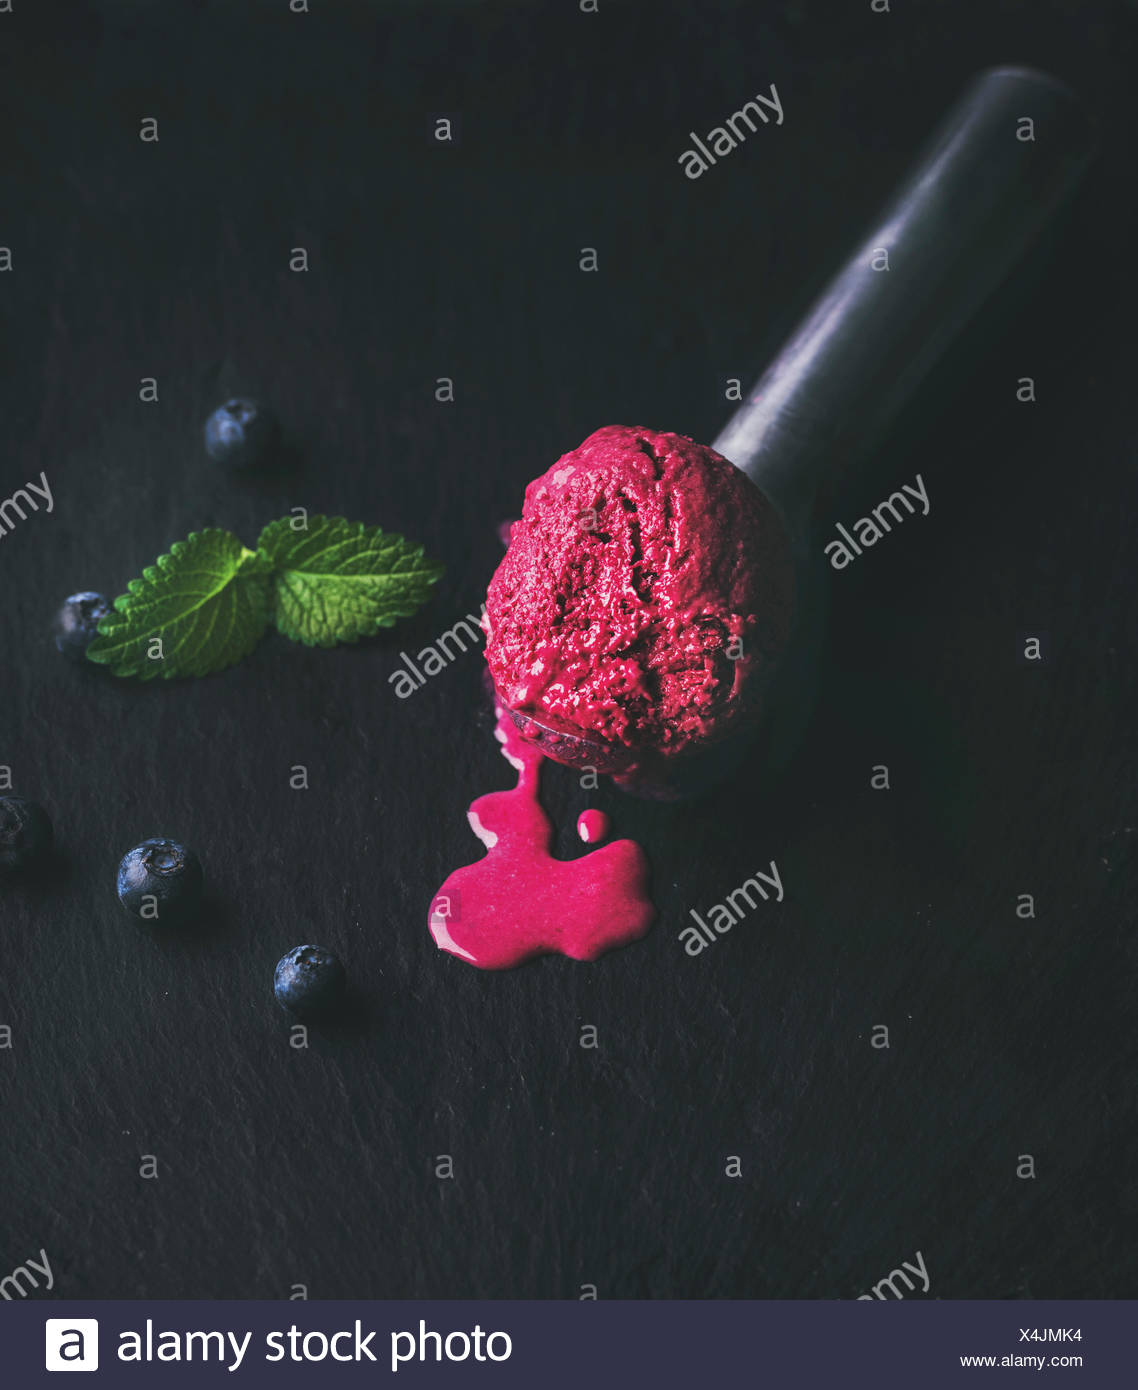 Melting scoop of blueberry ice-cream with mint leaves over black slate stone background, selective focus - Stock Image